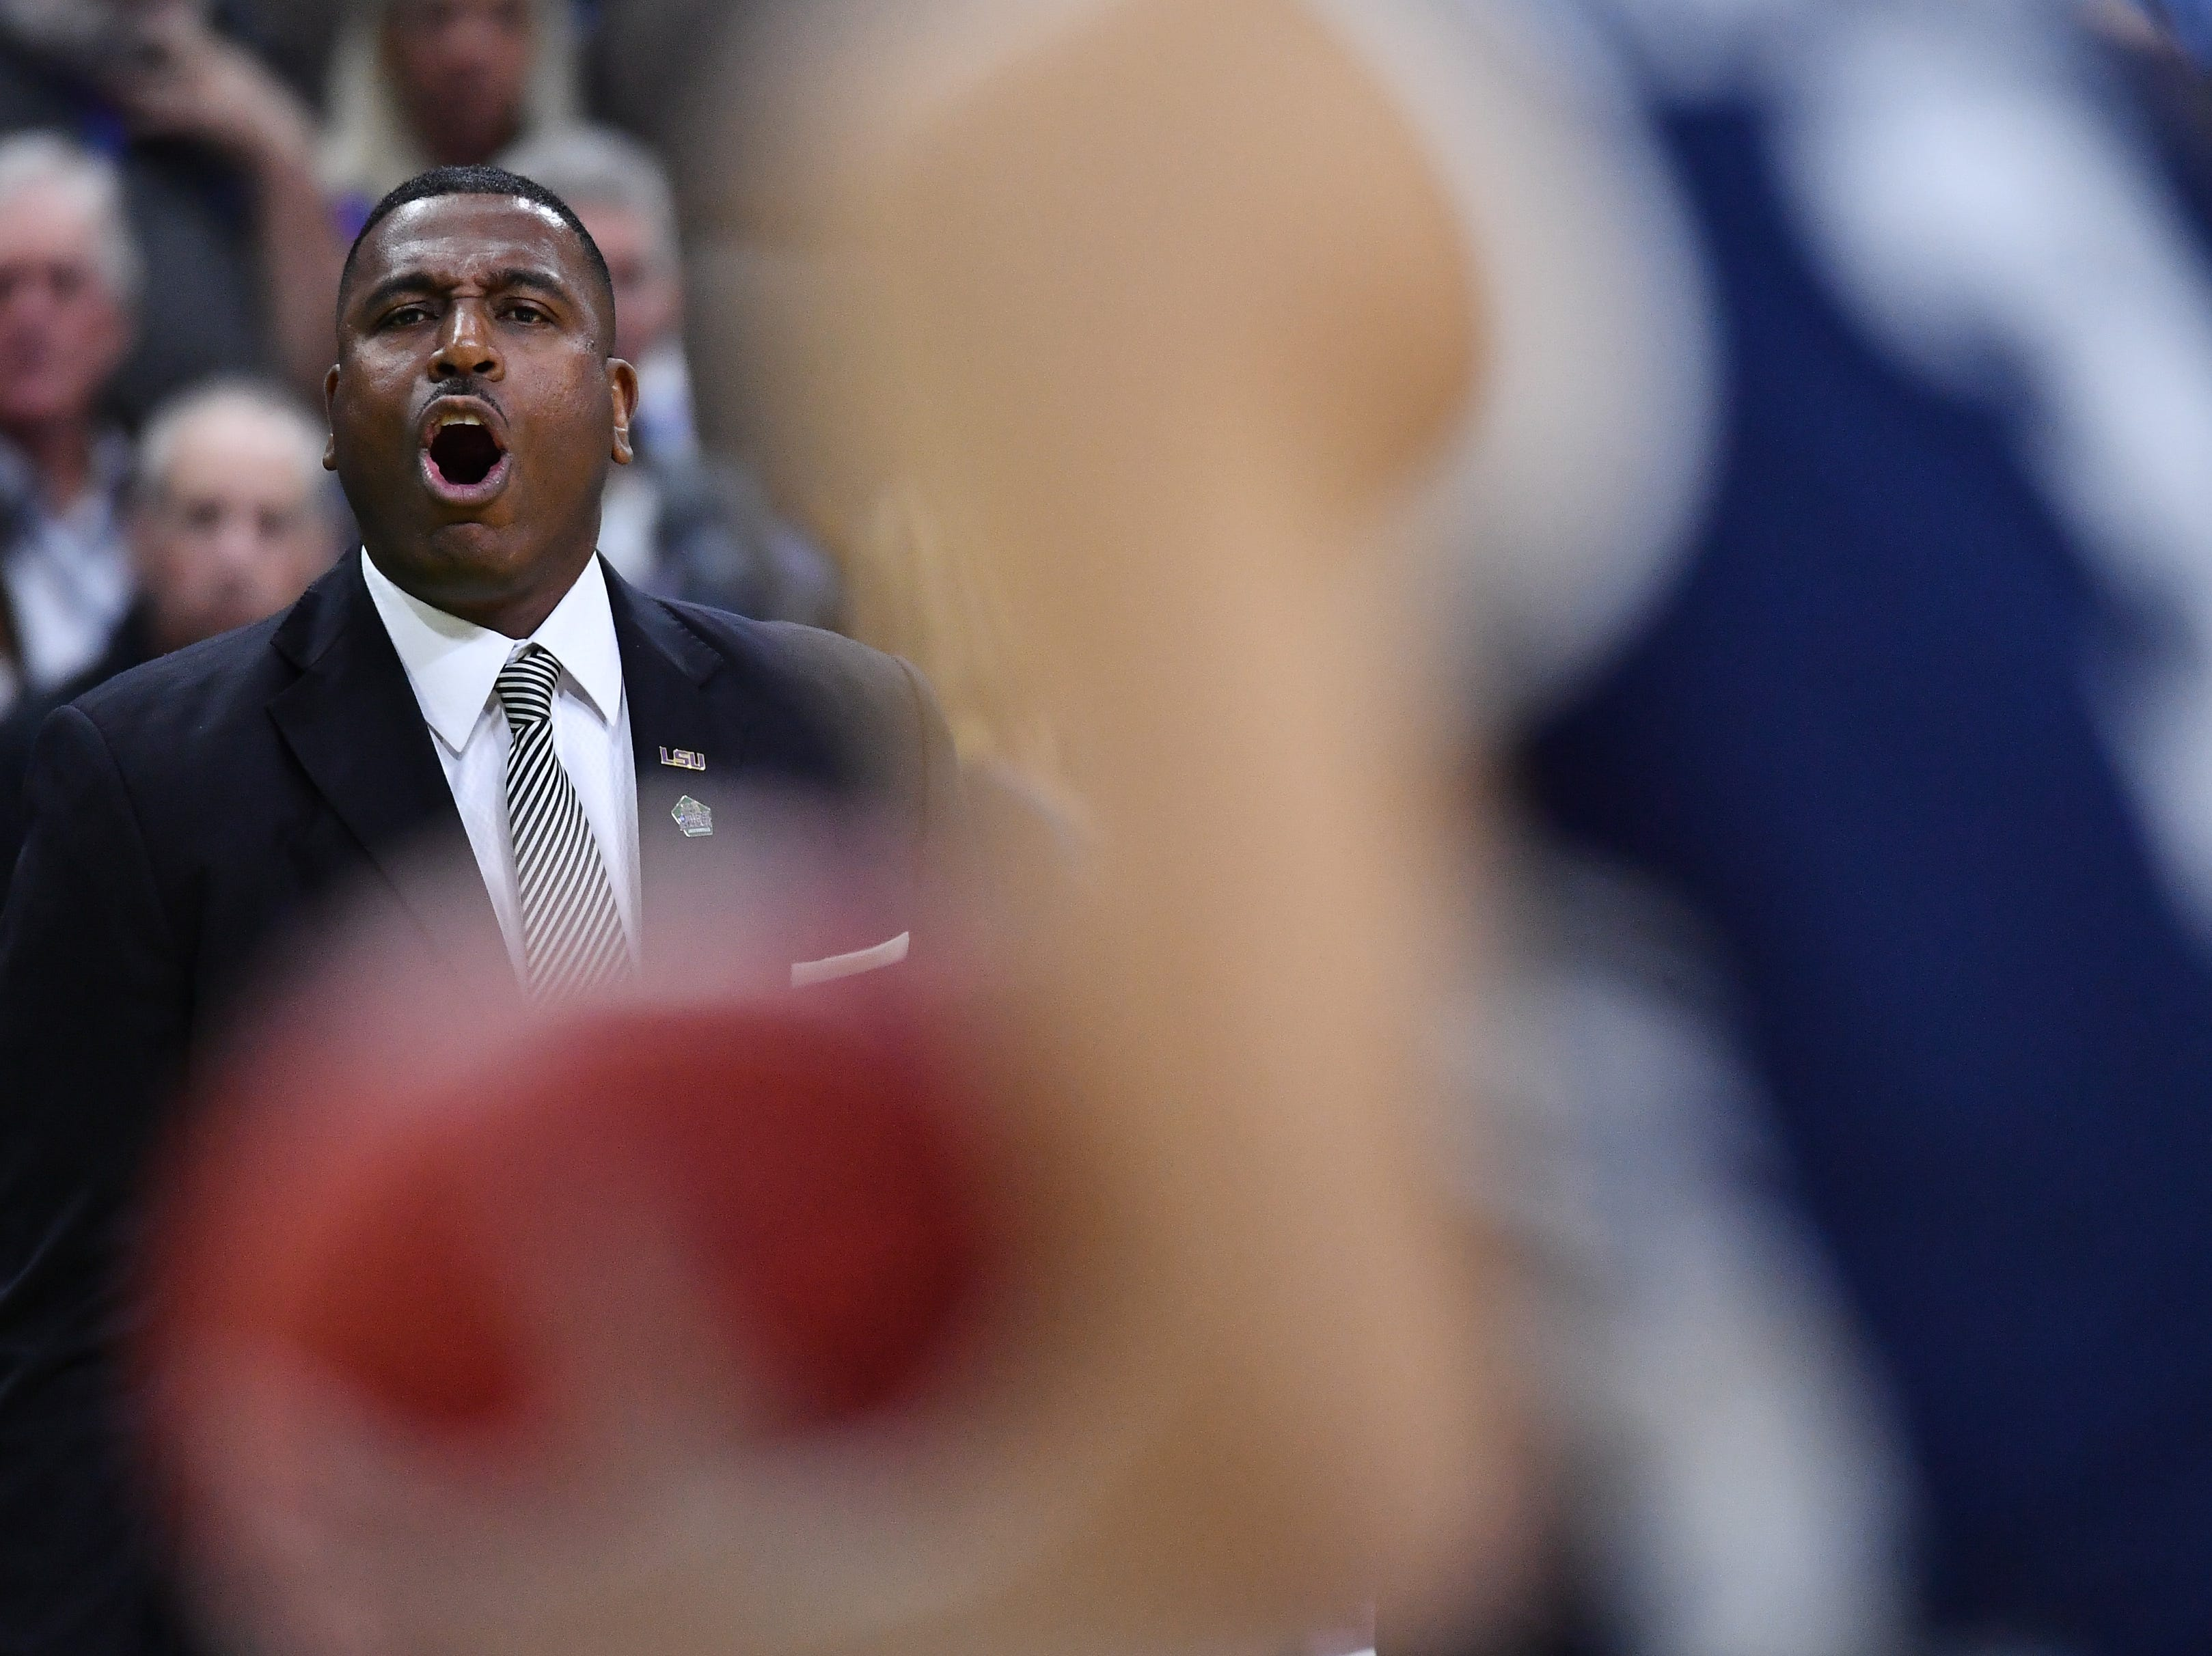 Mar 21, 2019; Jacksonville, FL, USA; LSU Tigers interim head coach Tony Benford reacts during the first half against the Yale Bulldogs in the first round of the 2019 NCAA Tournament at Jacksonville Veterans Memorial Arena. Mandatory Credit: John David Mercer-USA TODAY Sports